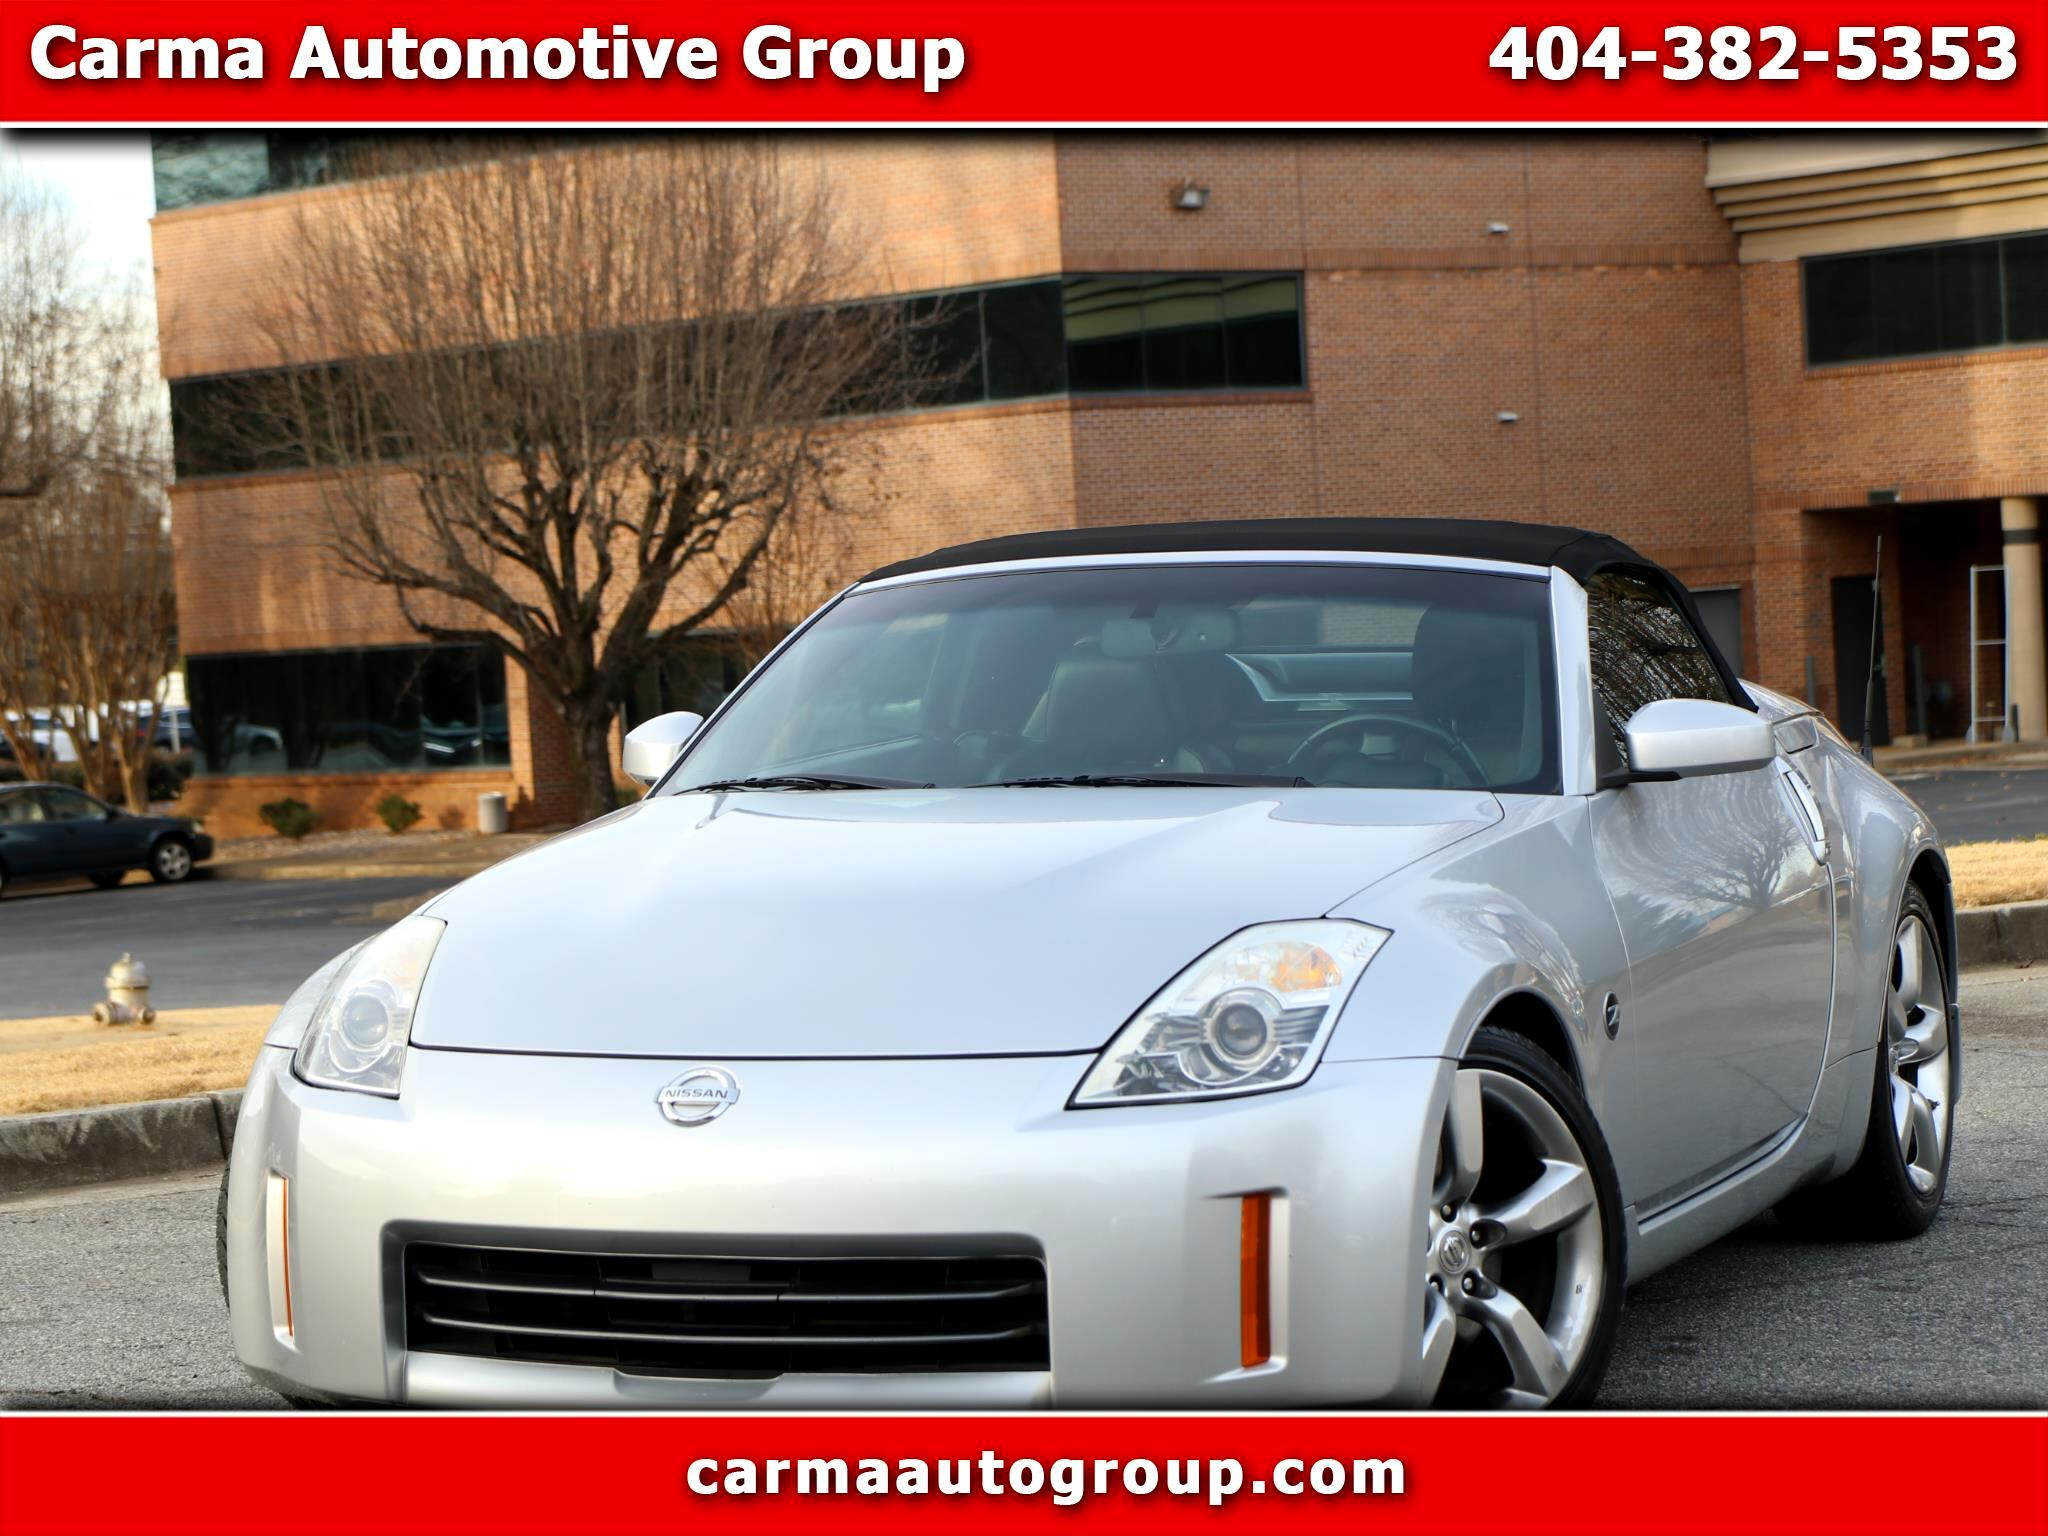 Used 2007 Nissan 350z 2dr Roadster Manual Touring For Sale In Duluth Ga 30096 Carma Automotive Group